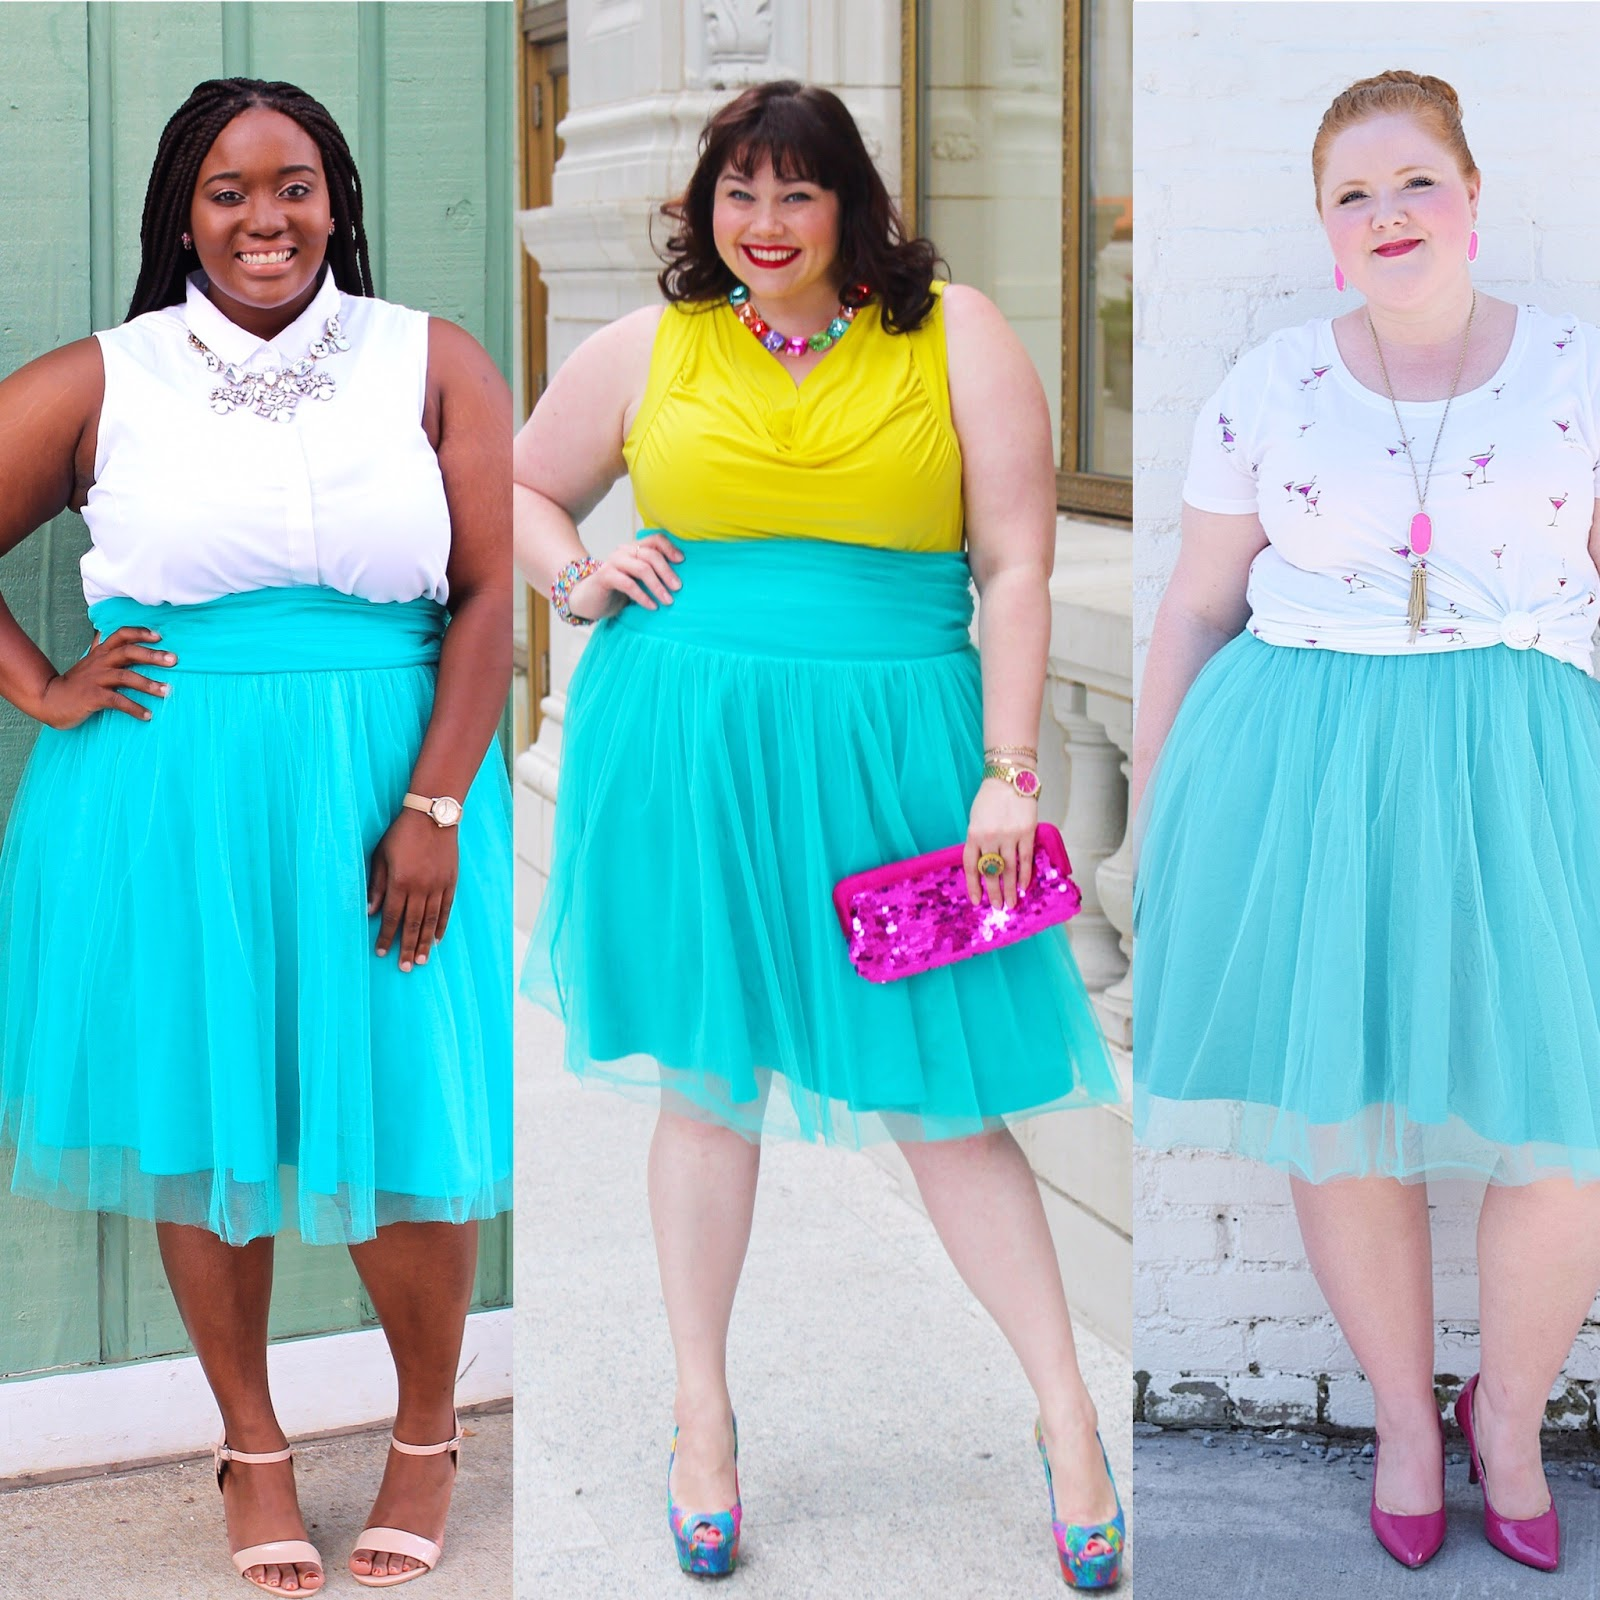 Plus Size Bloggers Tamera Hughes, Amber from Style Plus Curves, and Liz from With Wonder and Whimsy